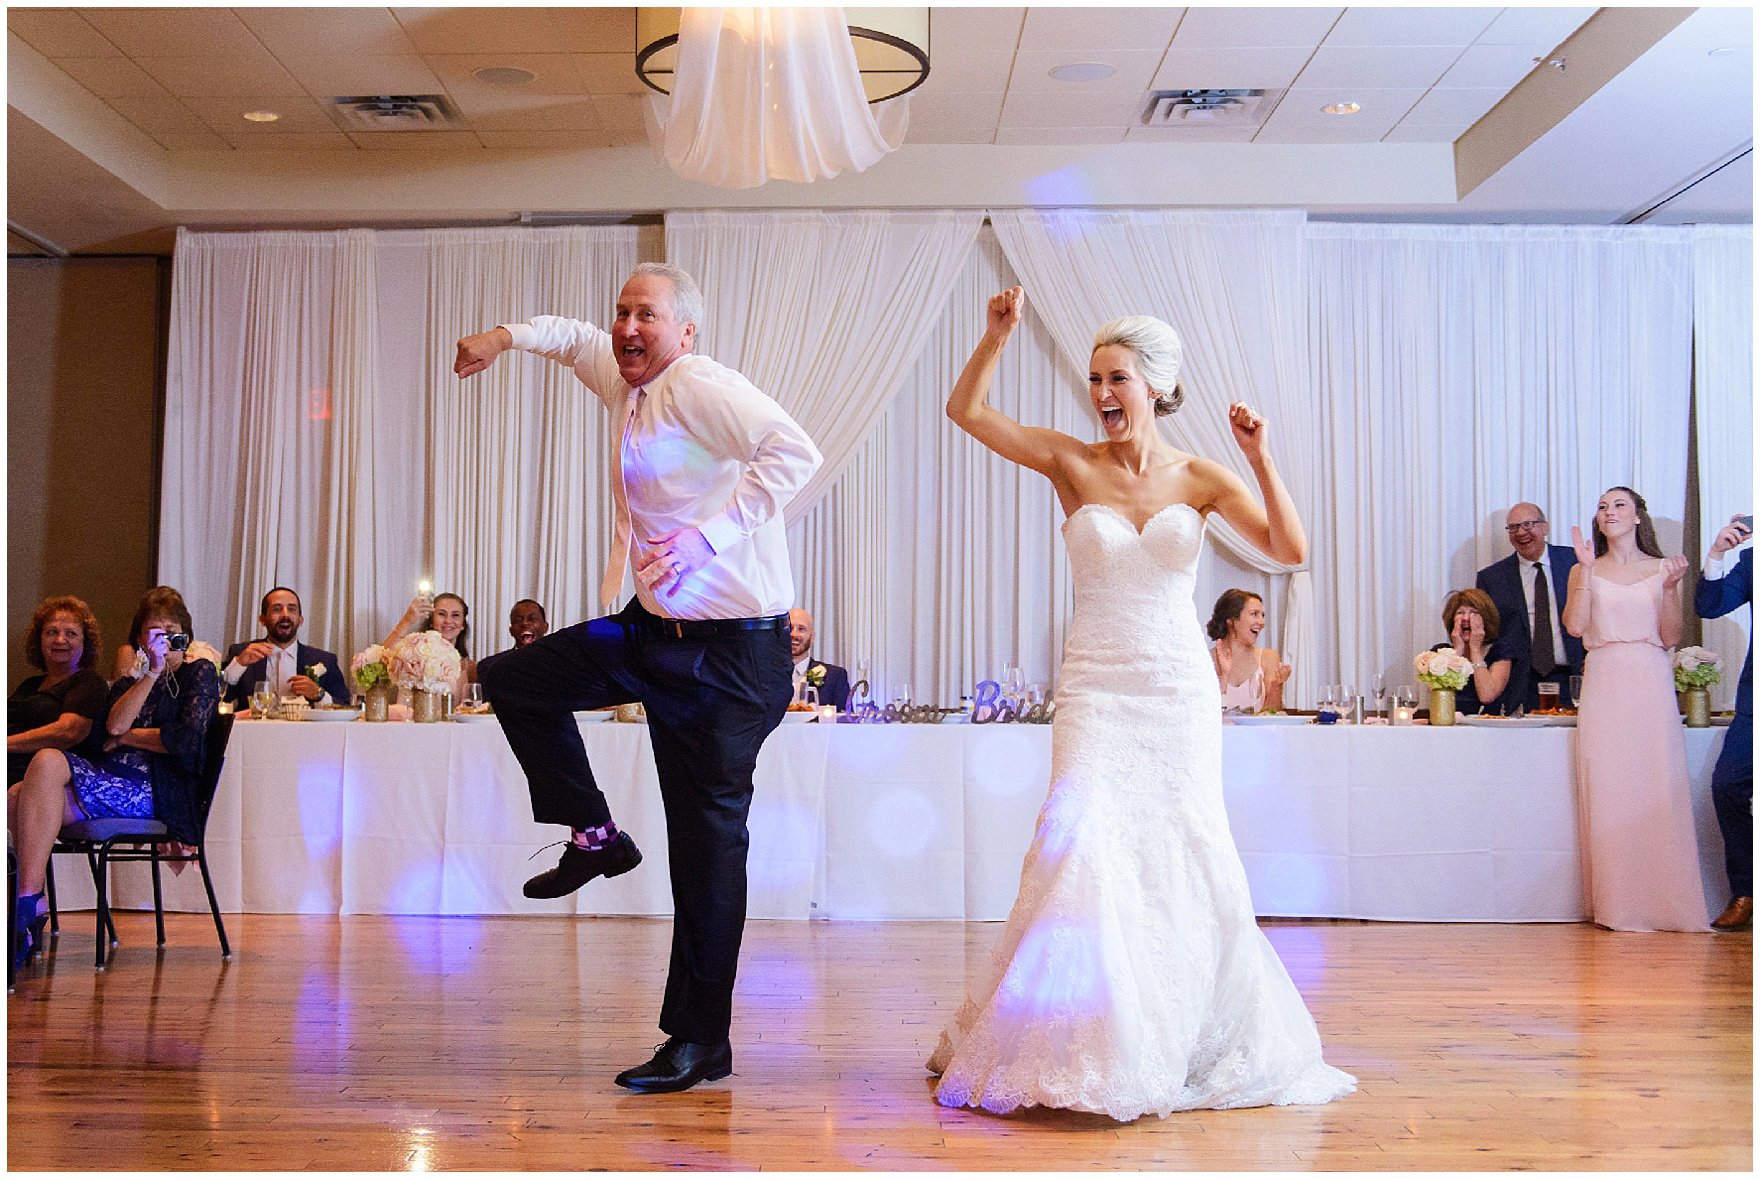 The bride dances with her father for a St. Josephs Downers Grove Pinstripes Oak Brook, Illinois wedding.